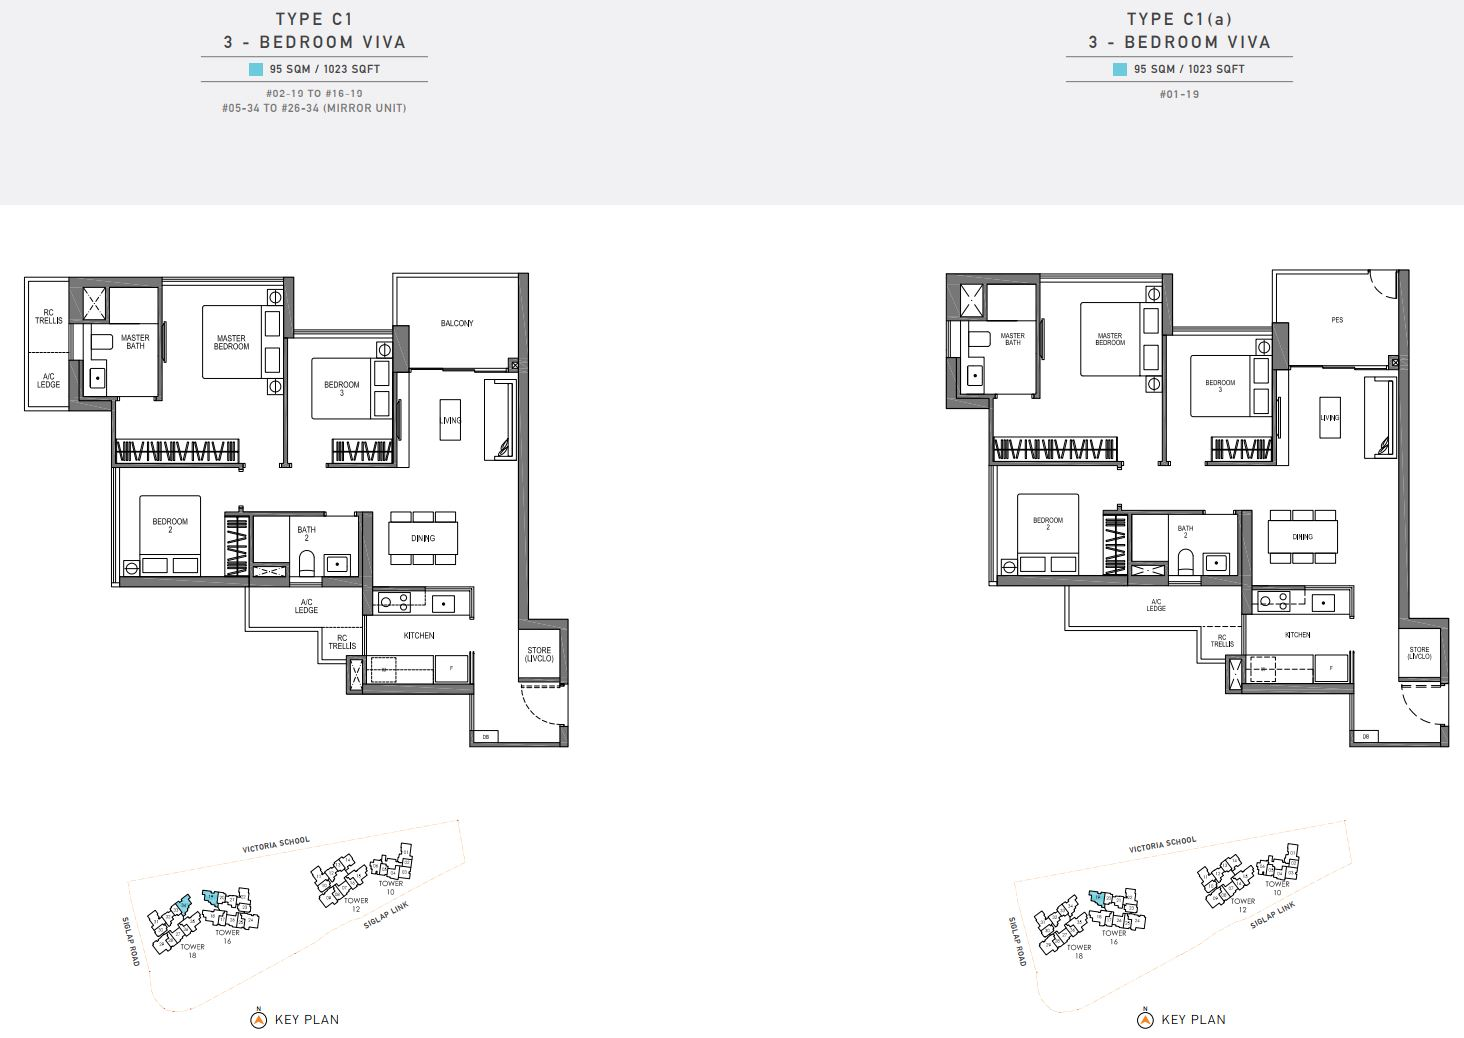 Seaside Residences FloorPlan - 3 Bedroom Viva